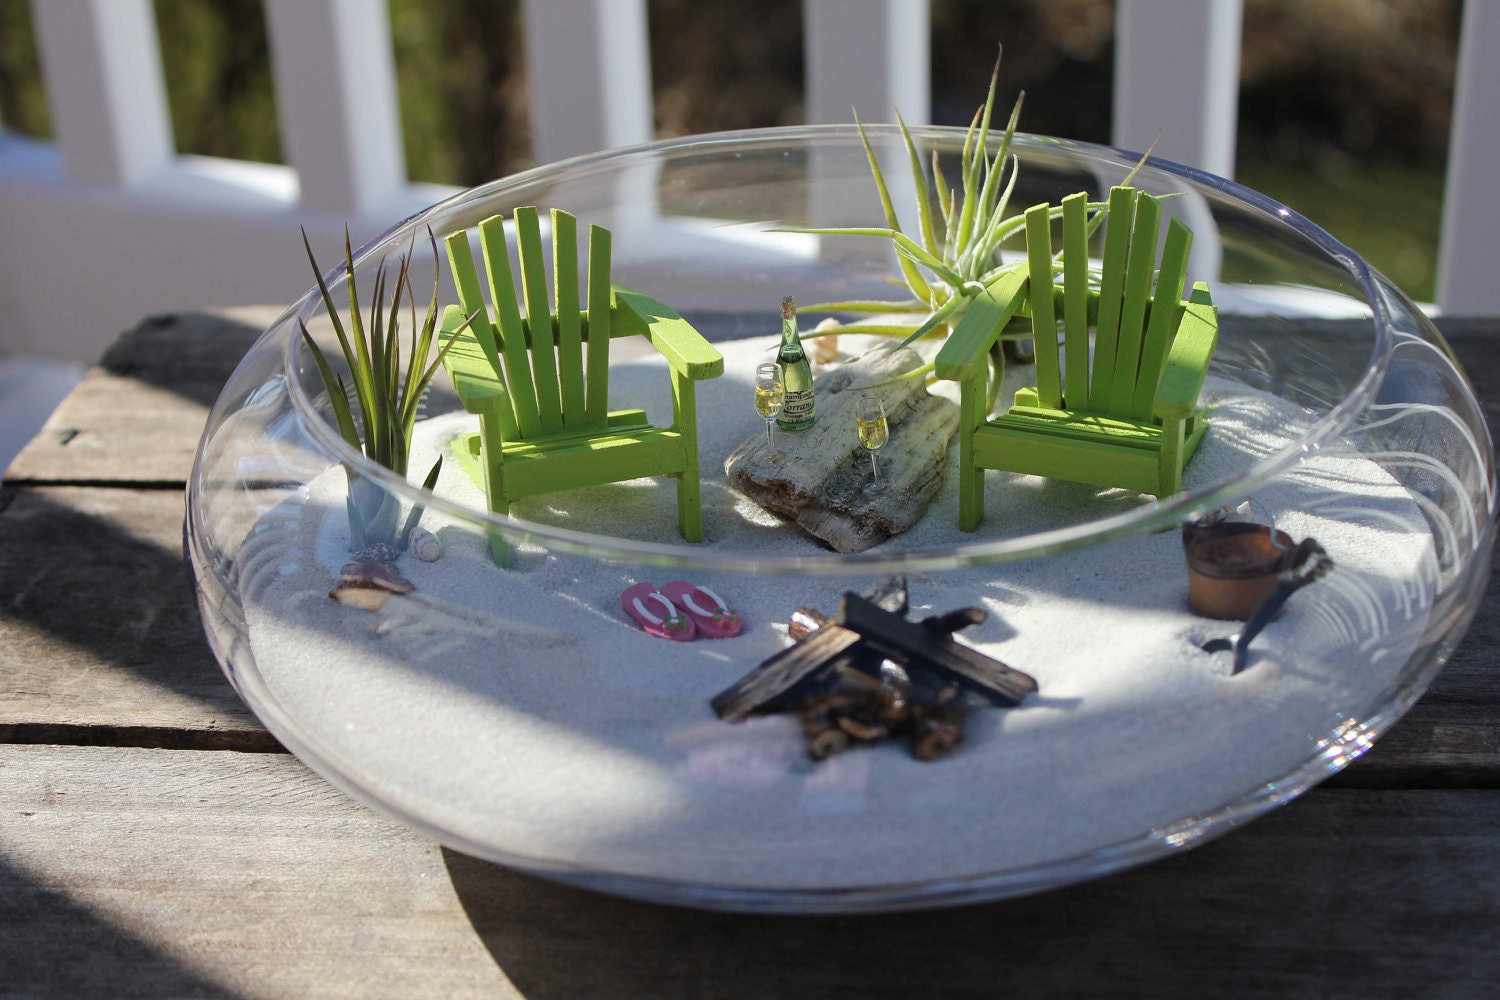 Gnome Garden: MINIATURE BEACH VACATION For Two With A Campfire And Sand